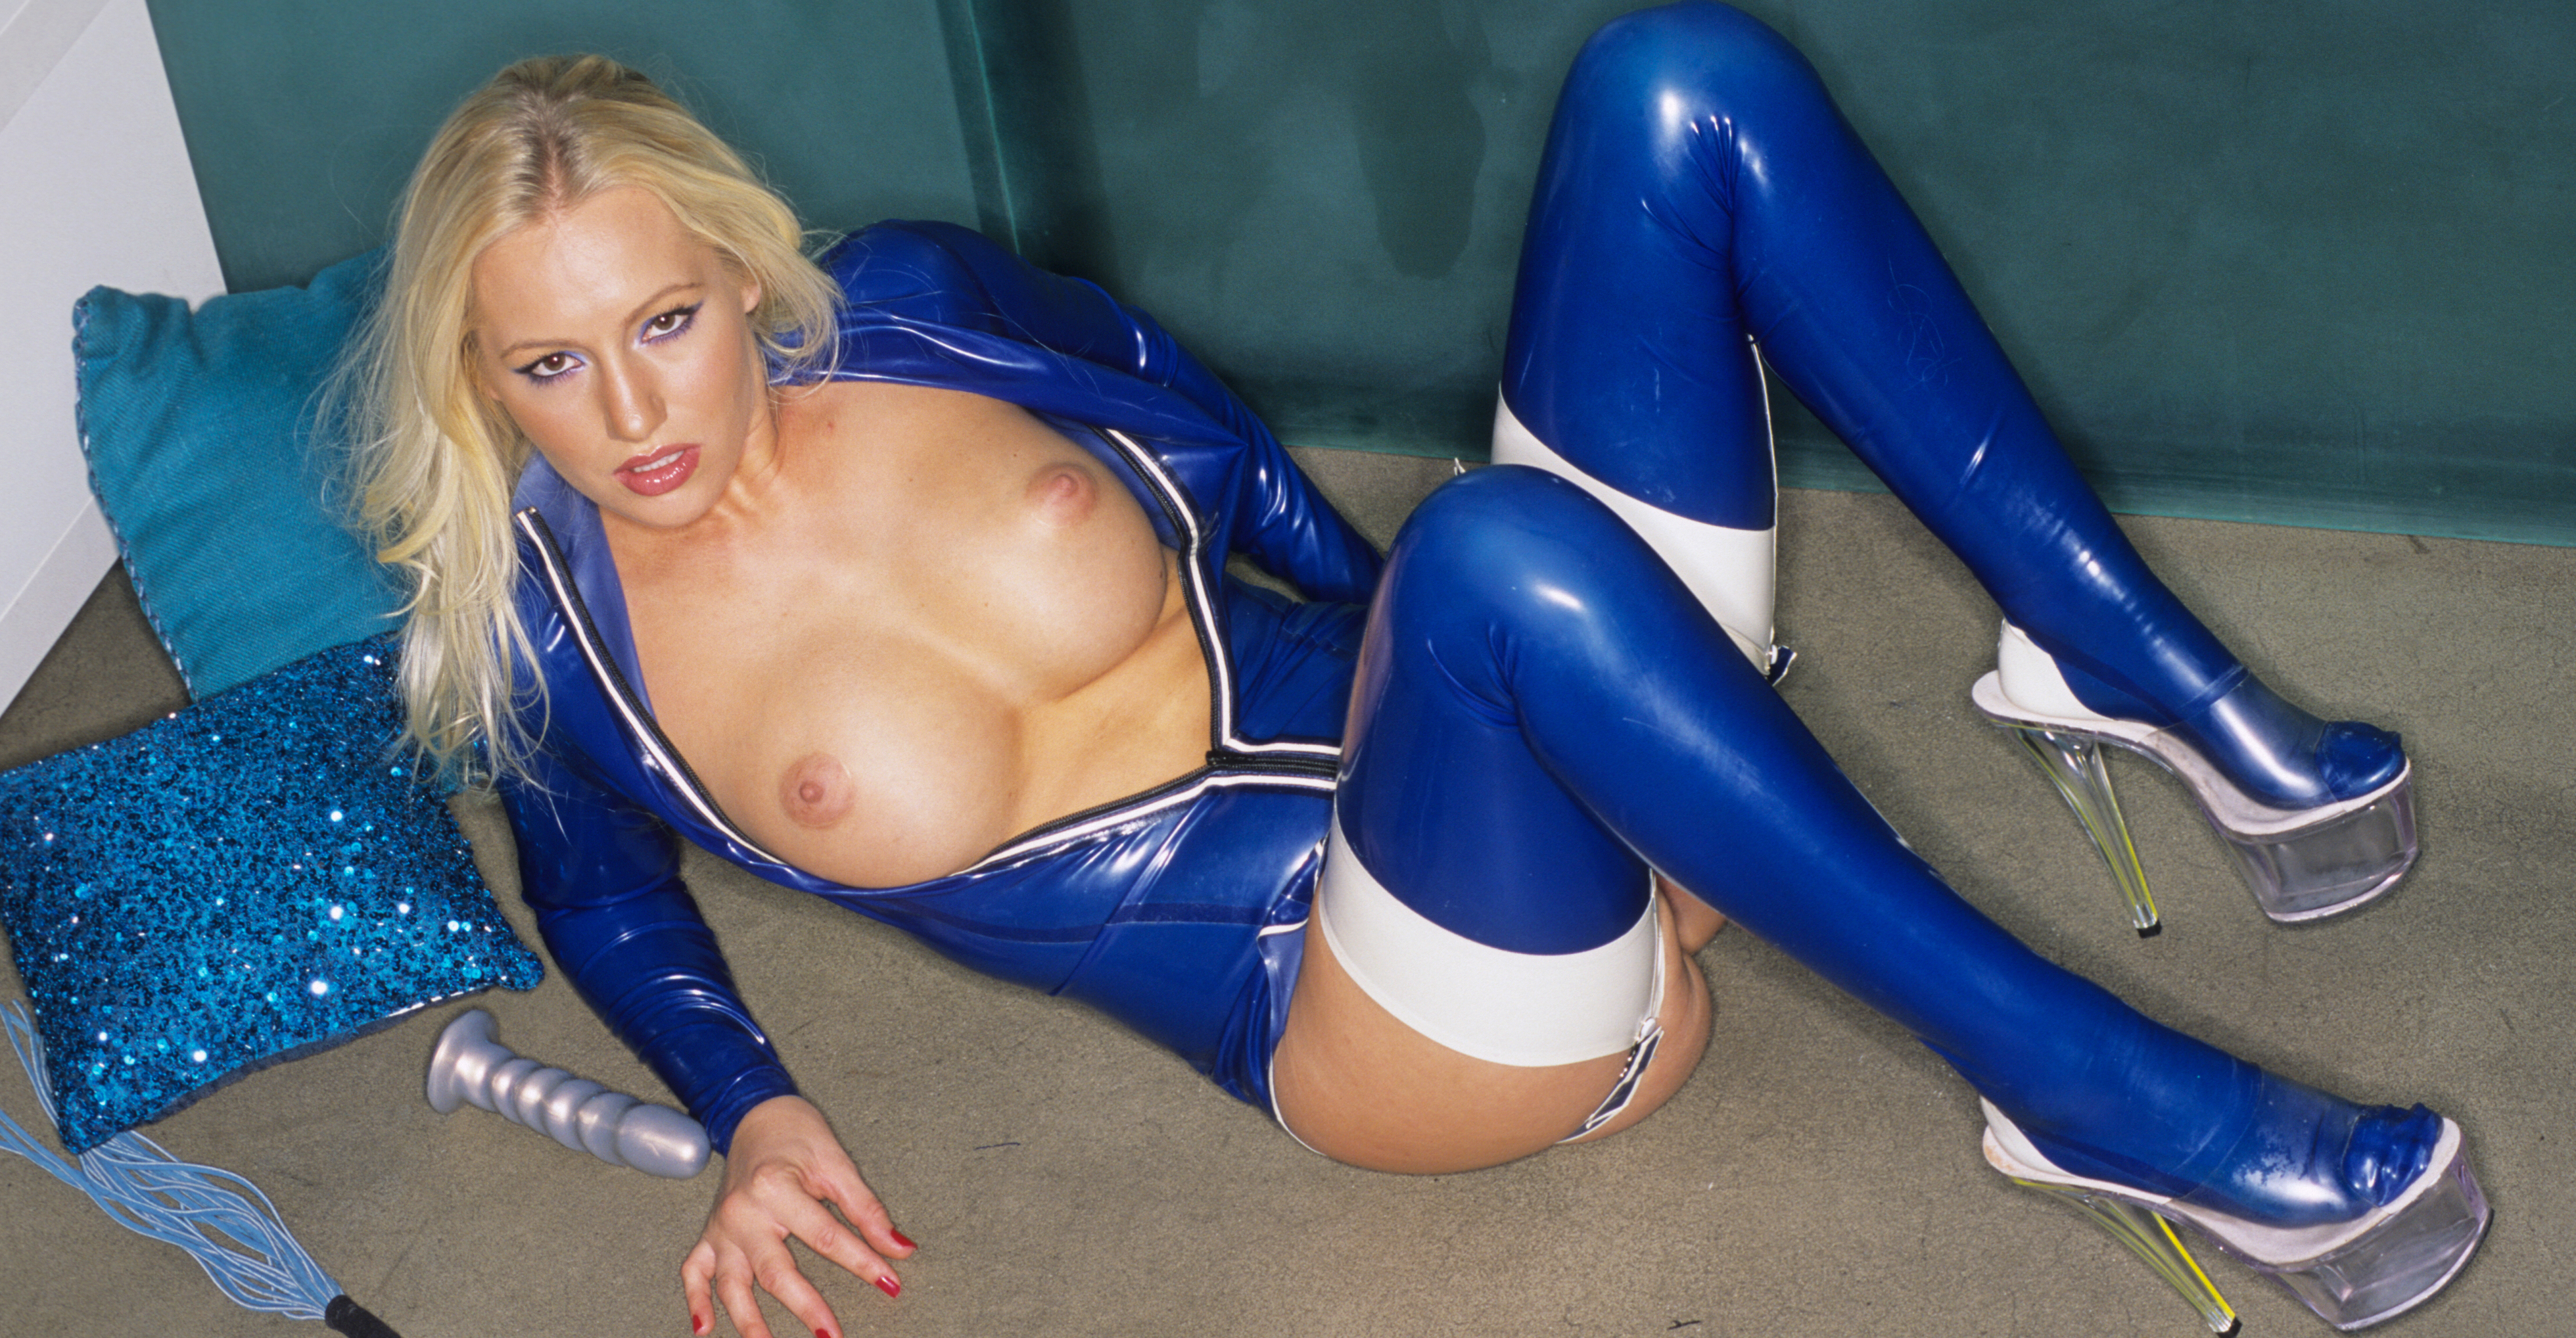 In Shimmering Blue Bizarre Video XXX Porn Tube Video Image